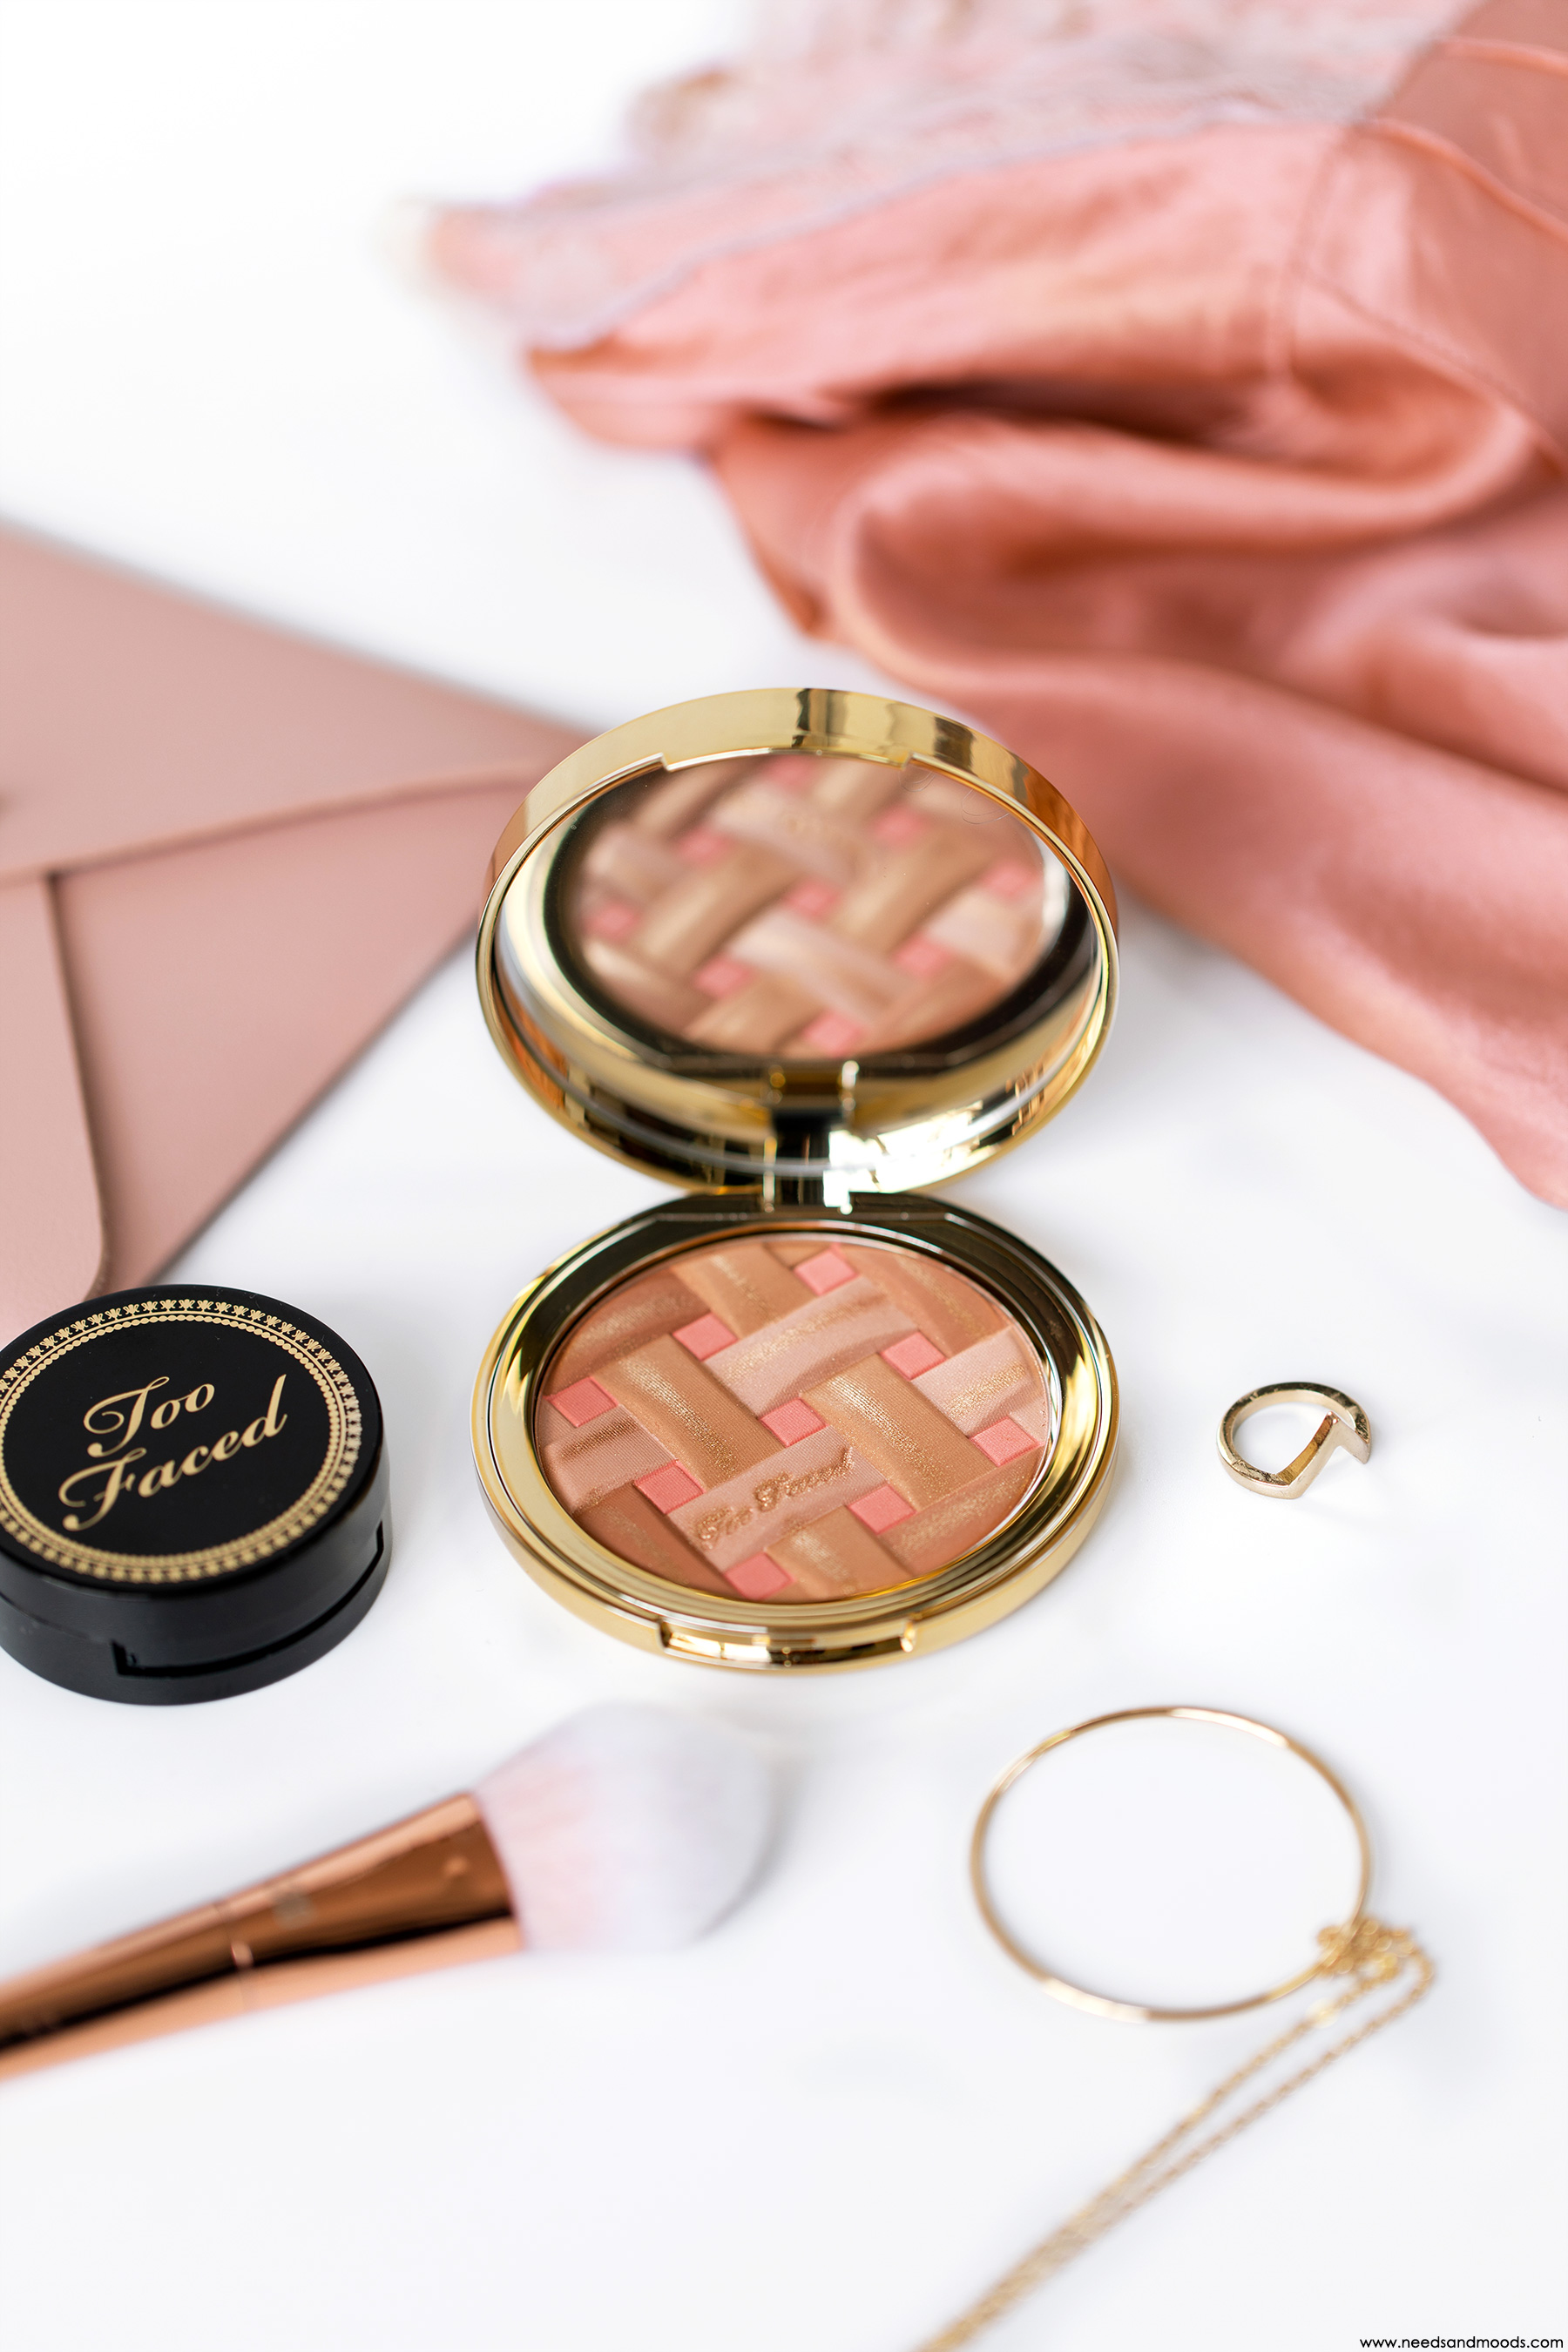 too faced sweetie pie test